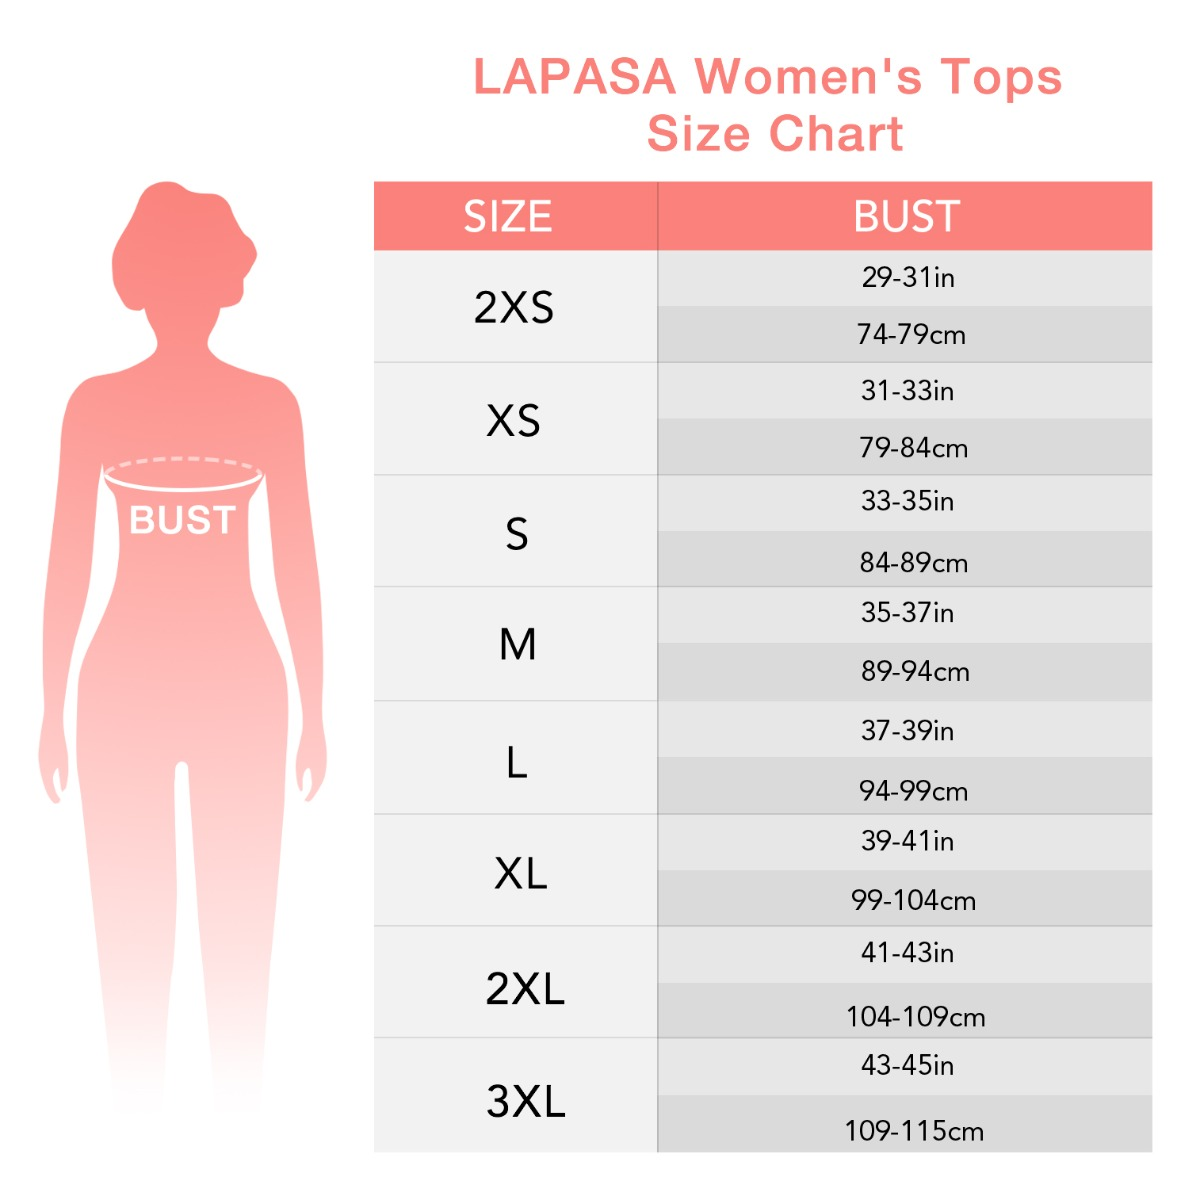 US  women's top size chart